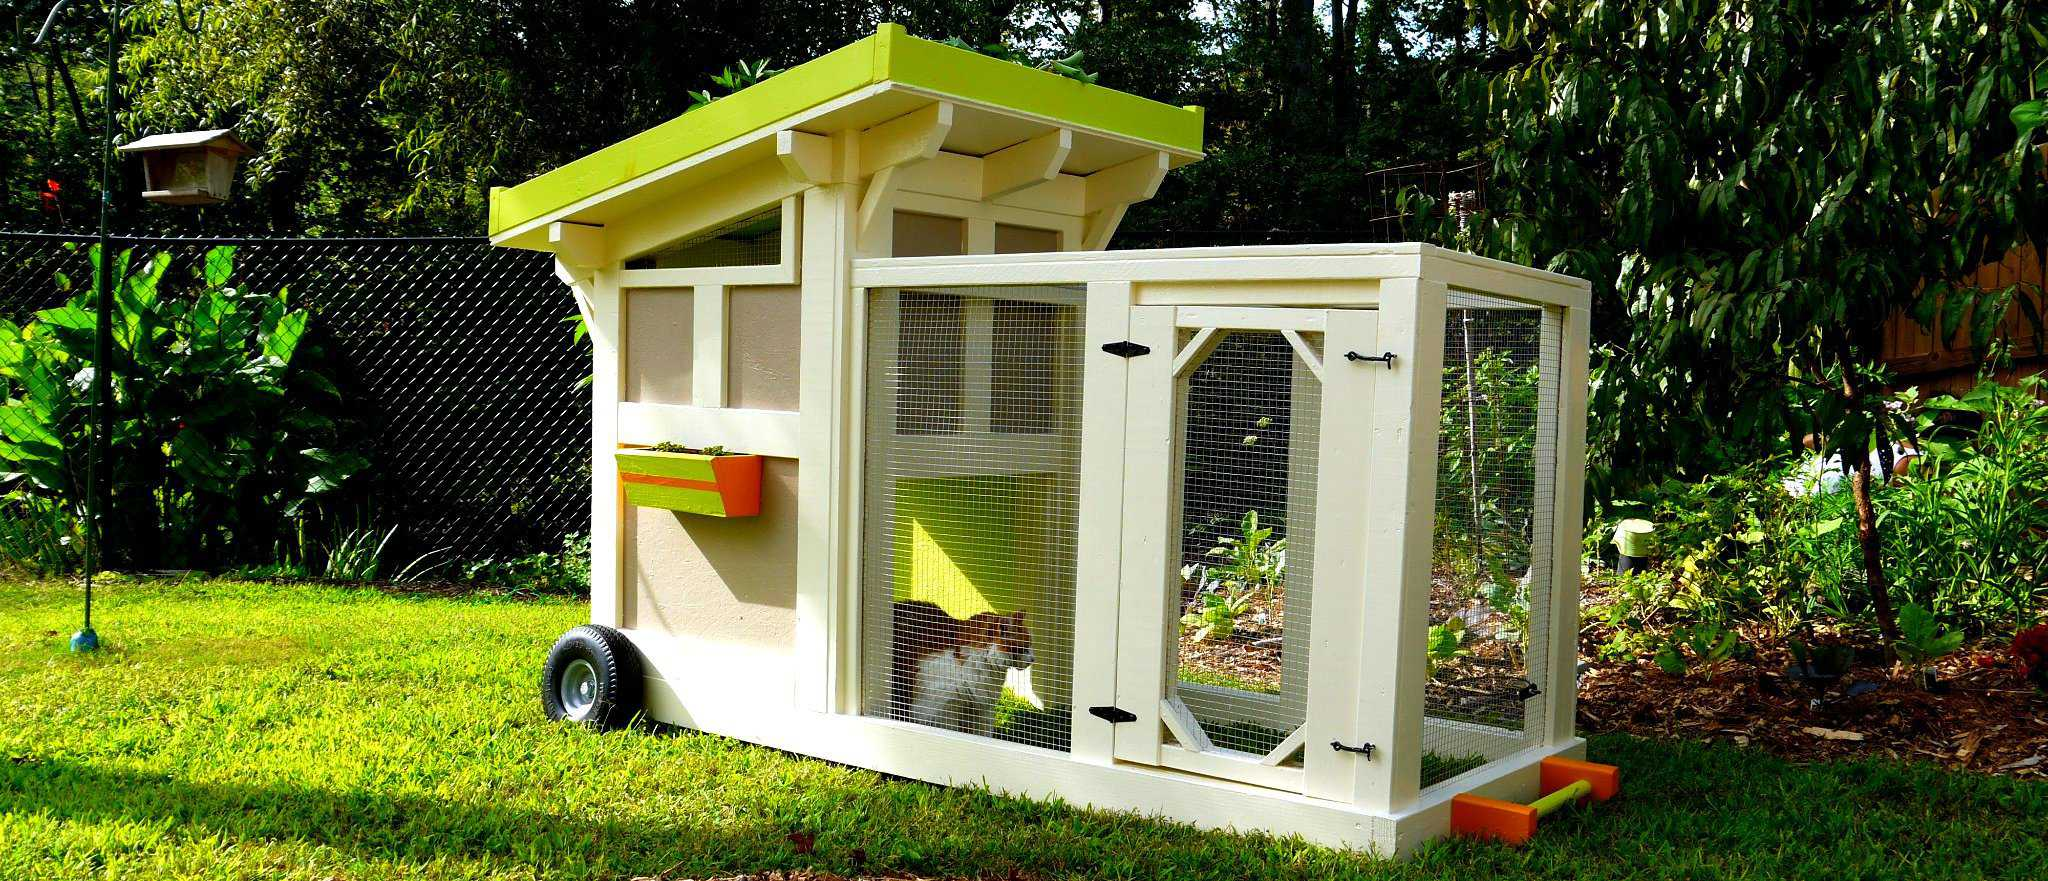 The Quacker Box A Green Roof Duck House Or Coop